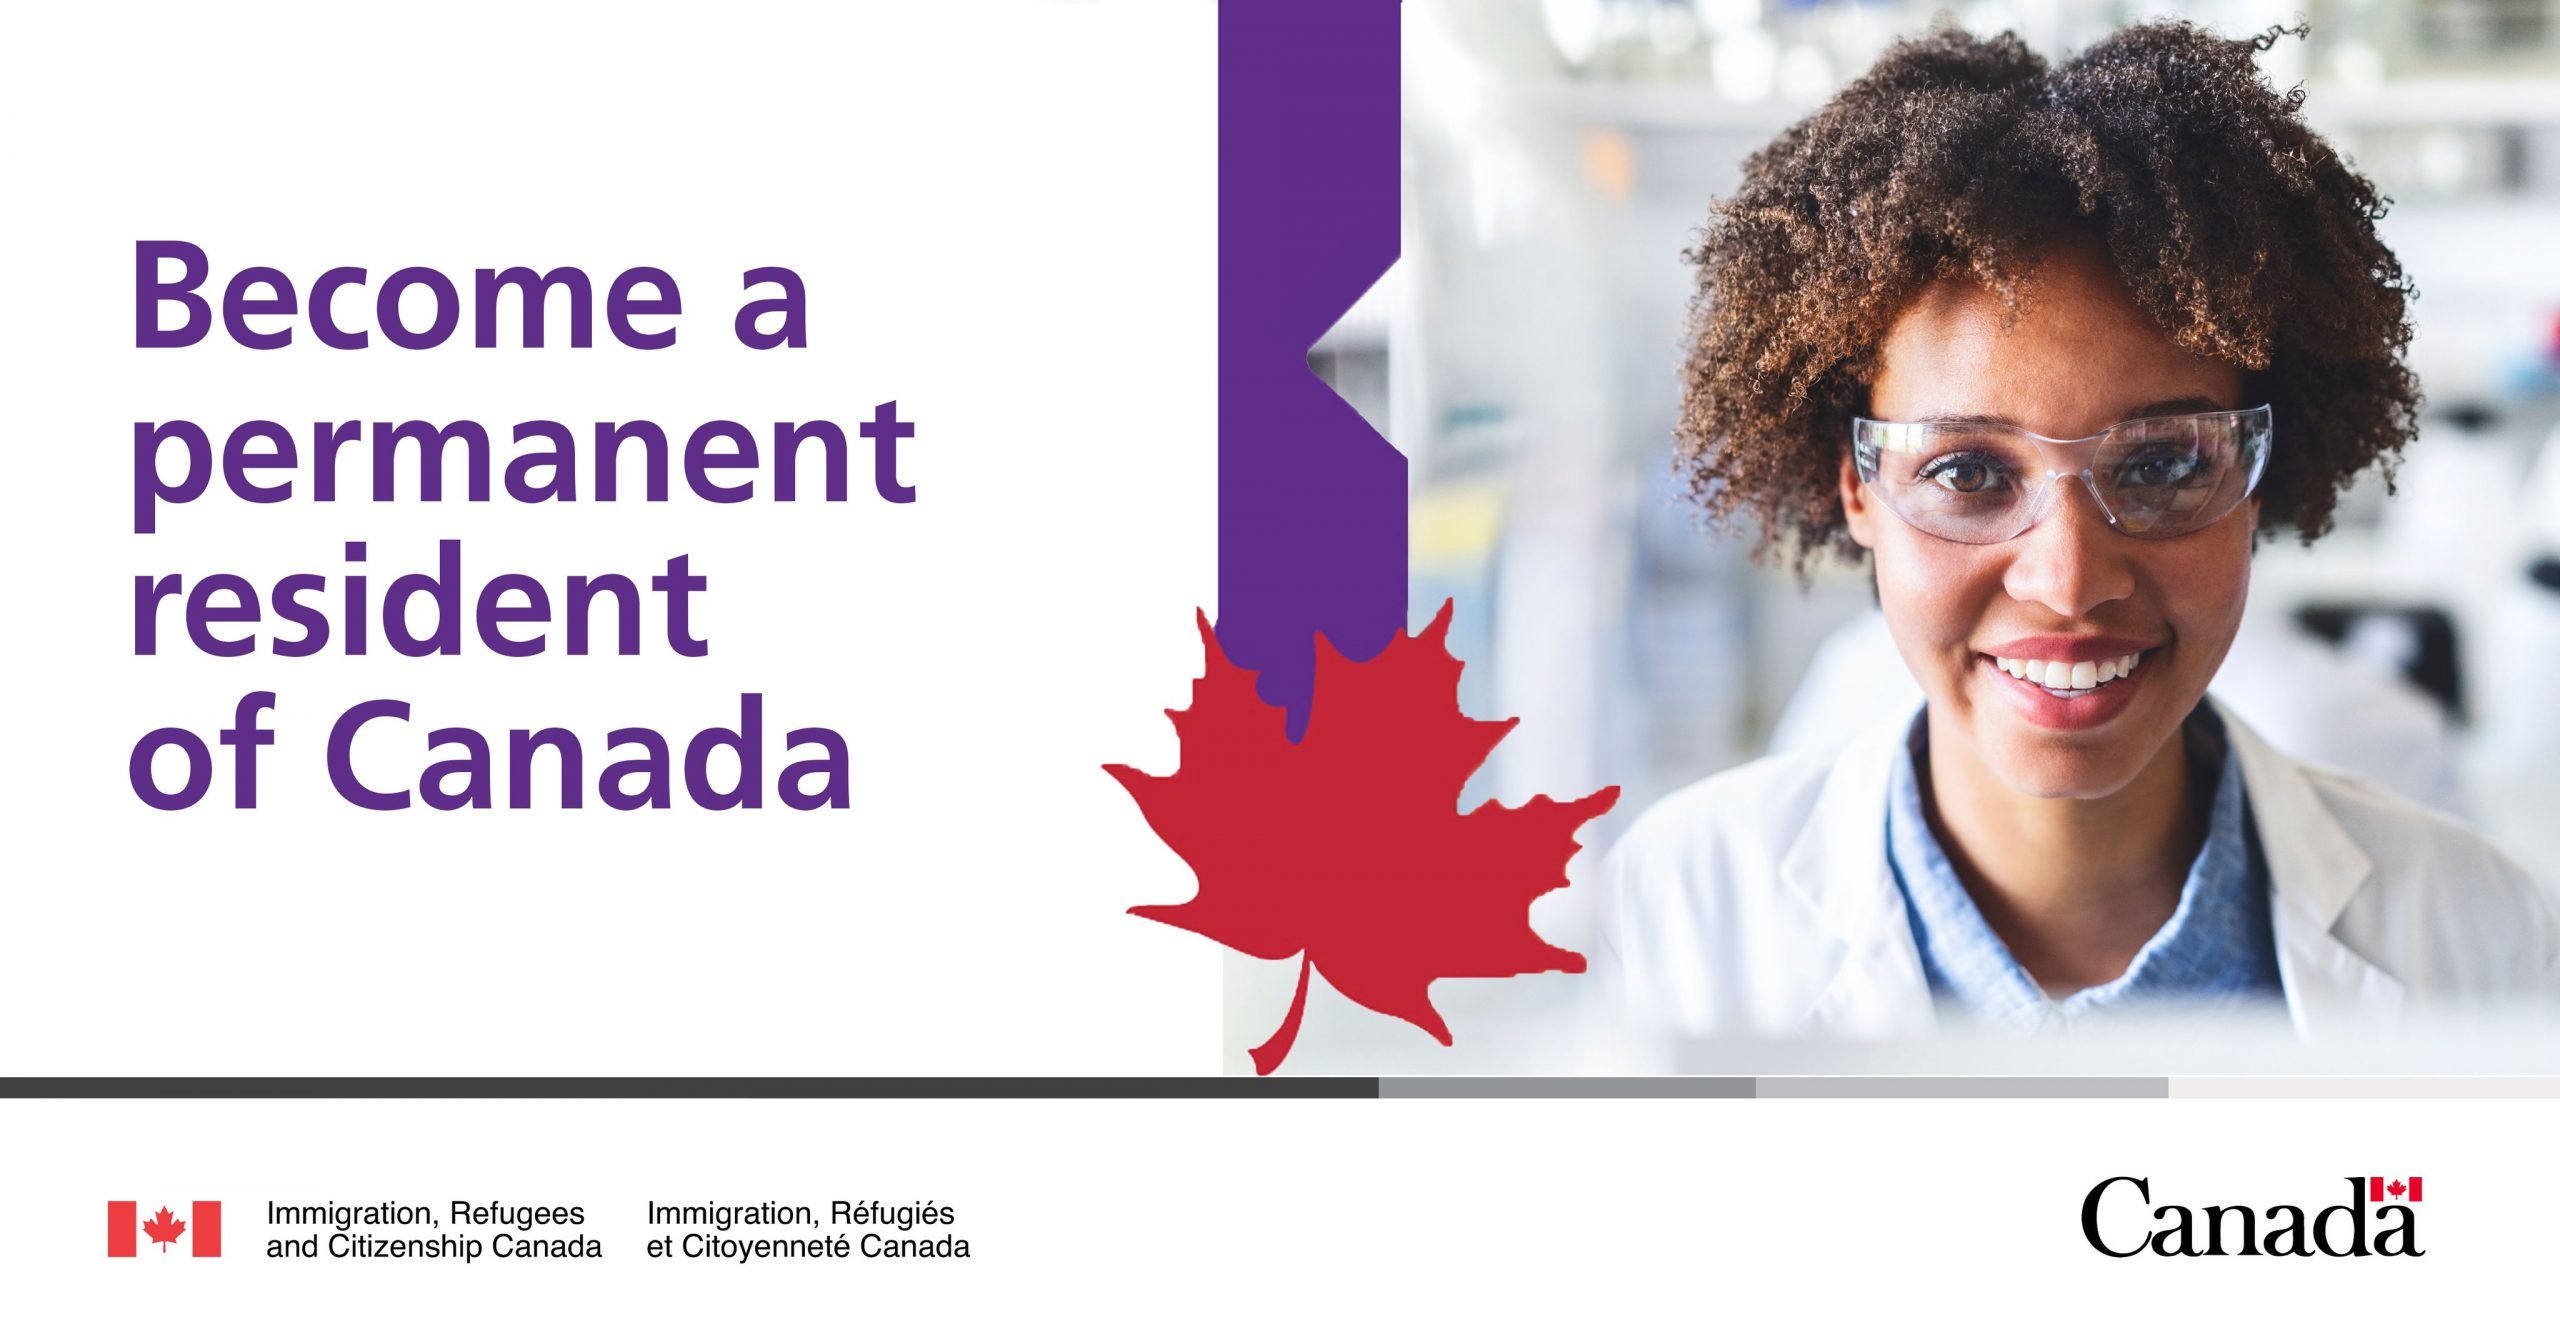 The pathway to permanent residence was opened to international students who graduated from a Canadian institution, health care workers and those in other designated essential occupations on May 6, 2021.